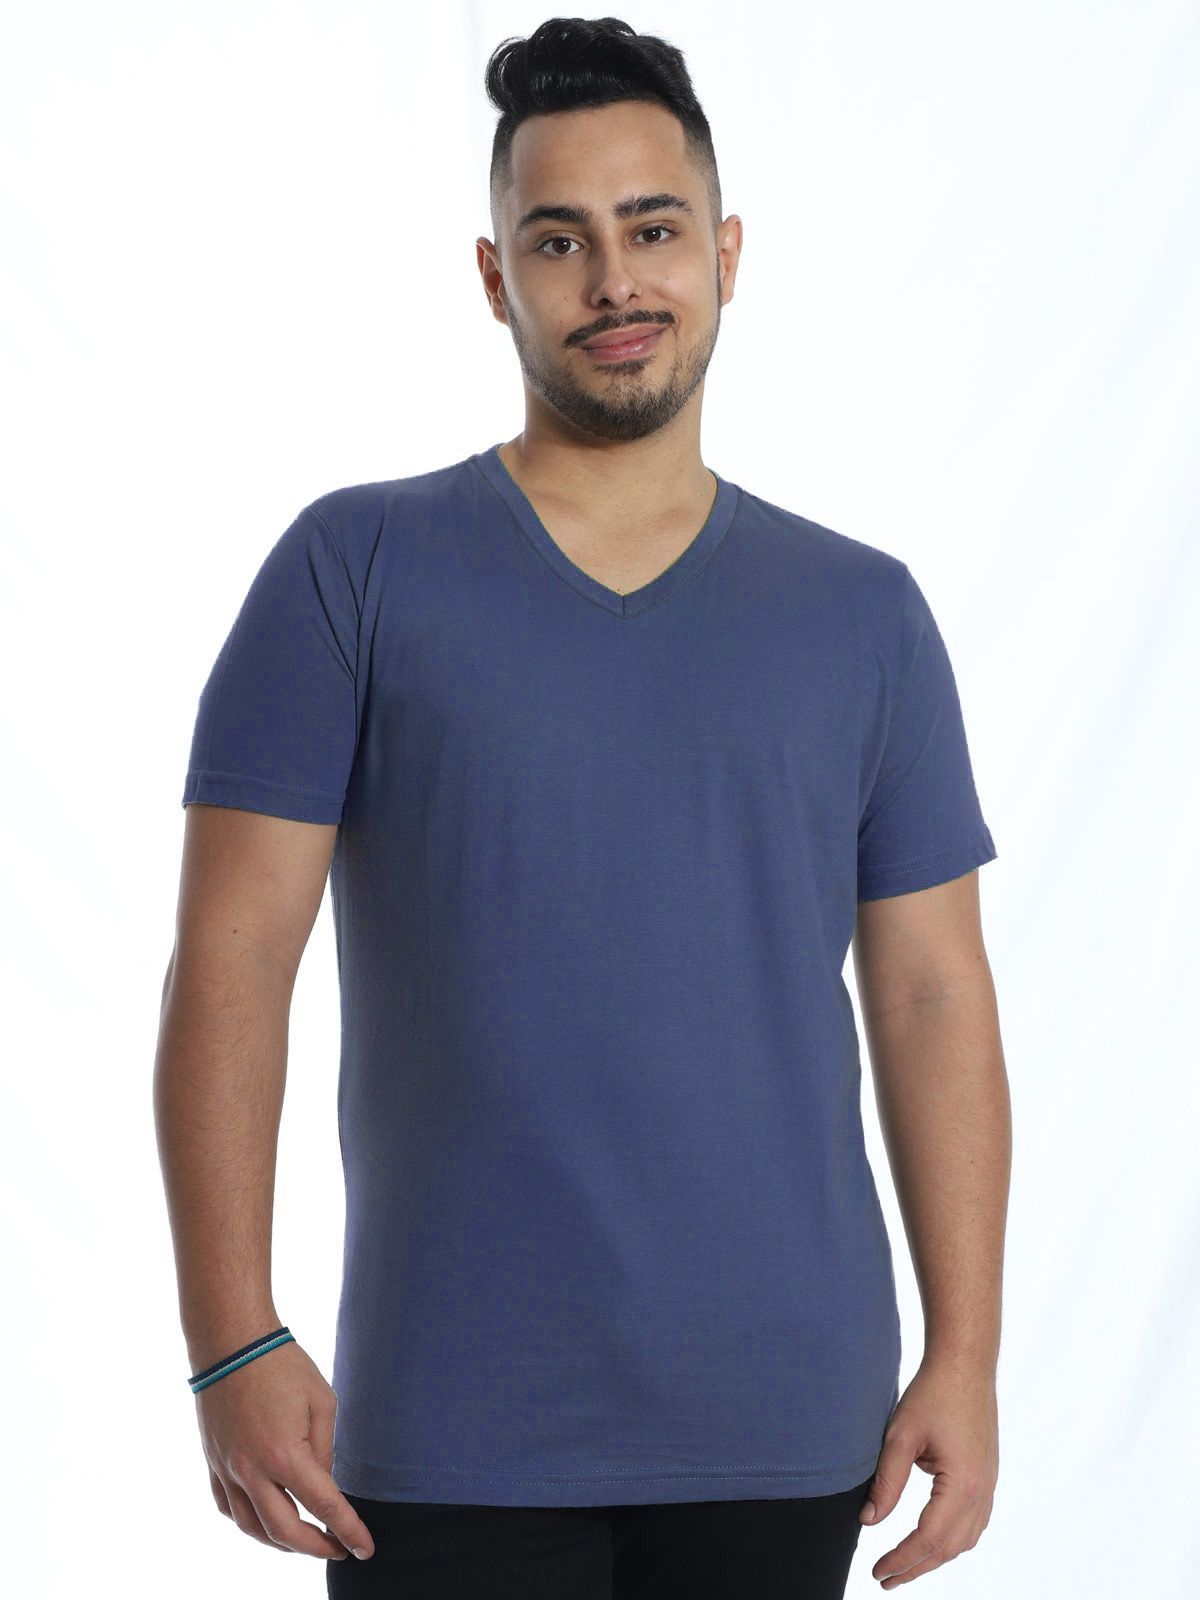 Camiseta Anistia Slim Fit Decote V. Lisa Jeans